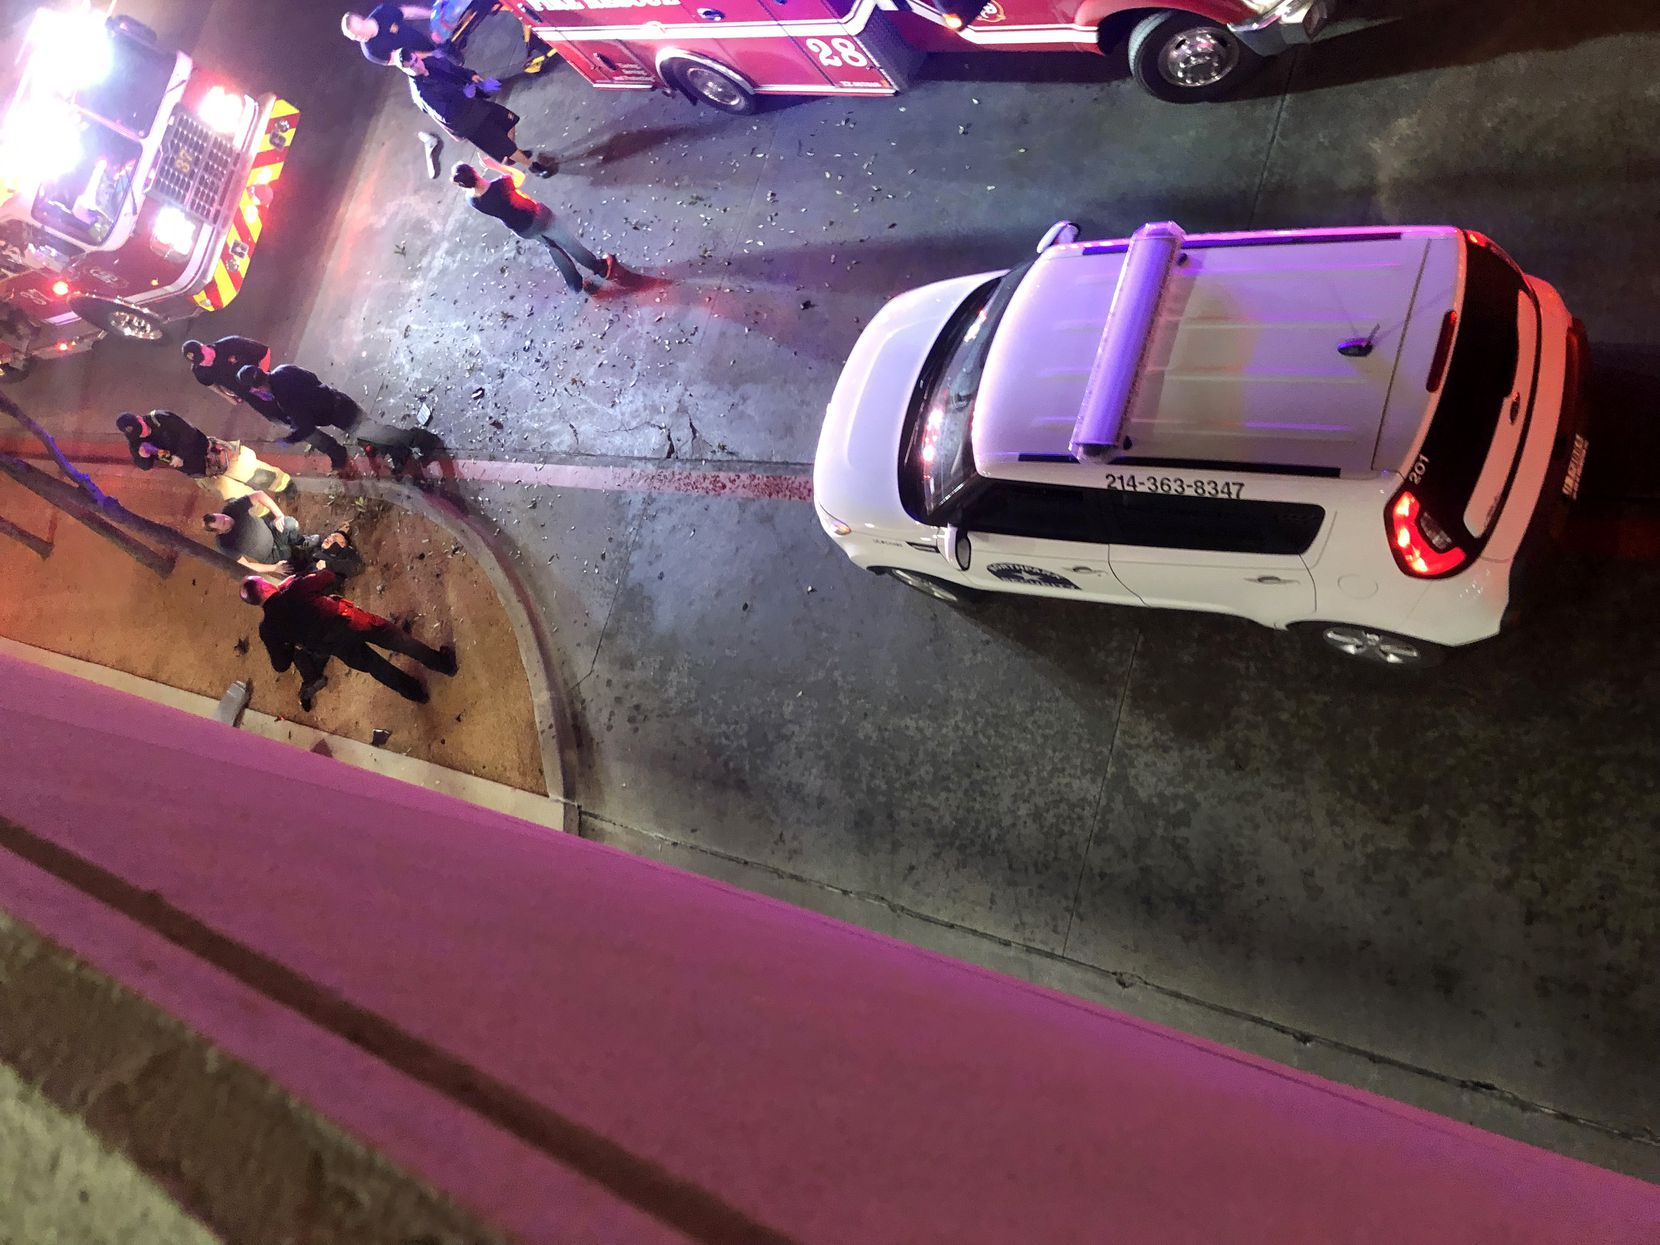 A Dodge Charger driven by Christopher Ryan Shaw, 29, struck two pedestrians, killing Yu Luo and injuring Shiguo Wang (at left), on March 11 in a parking garage at NorthPark Center.